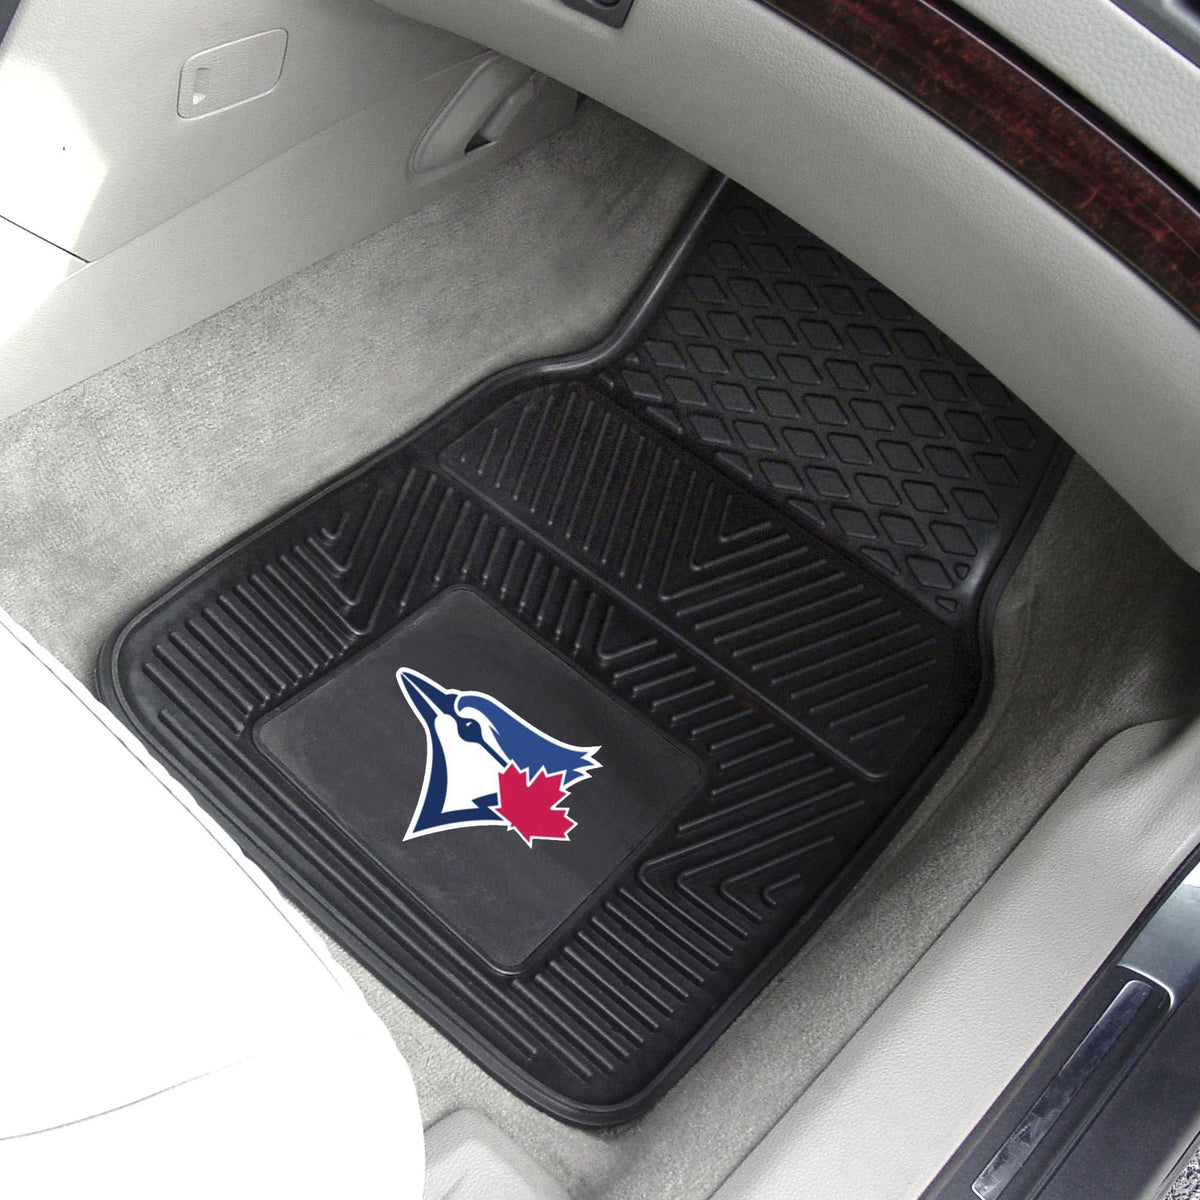 MLB - Vinyl Car Mat, 2-Piece Set MLB Mats, Front Car Mats, 2-pc Vinyl Car Mat Set, MLB, Auto Fan Mats Toronto Blue Jays